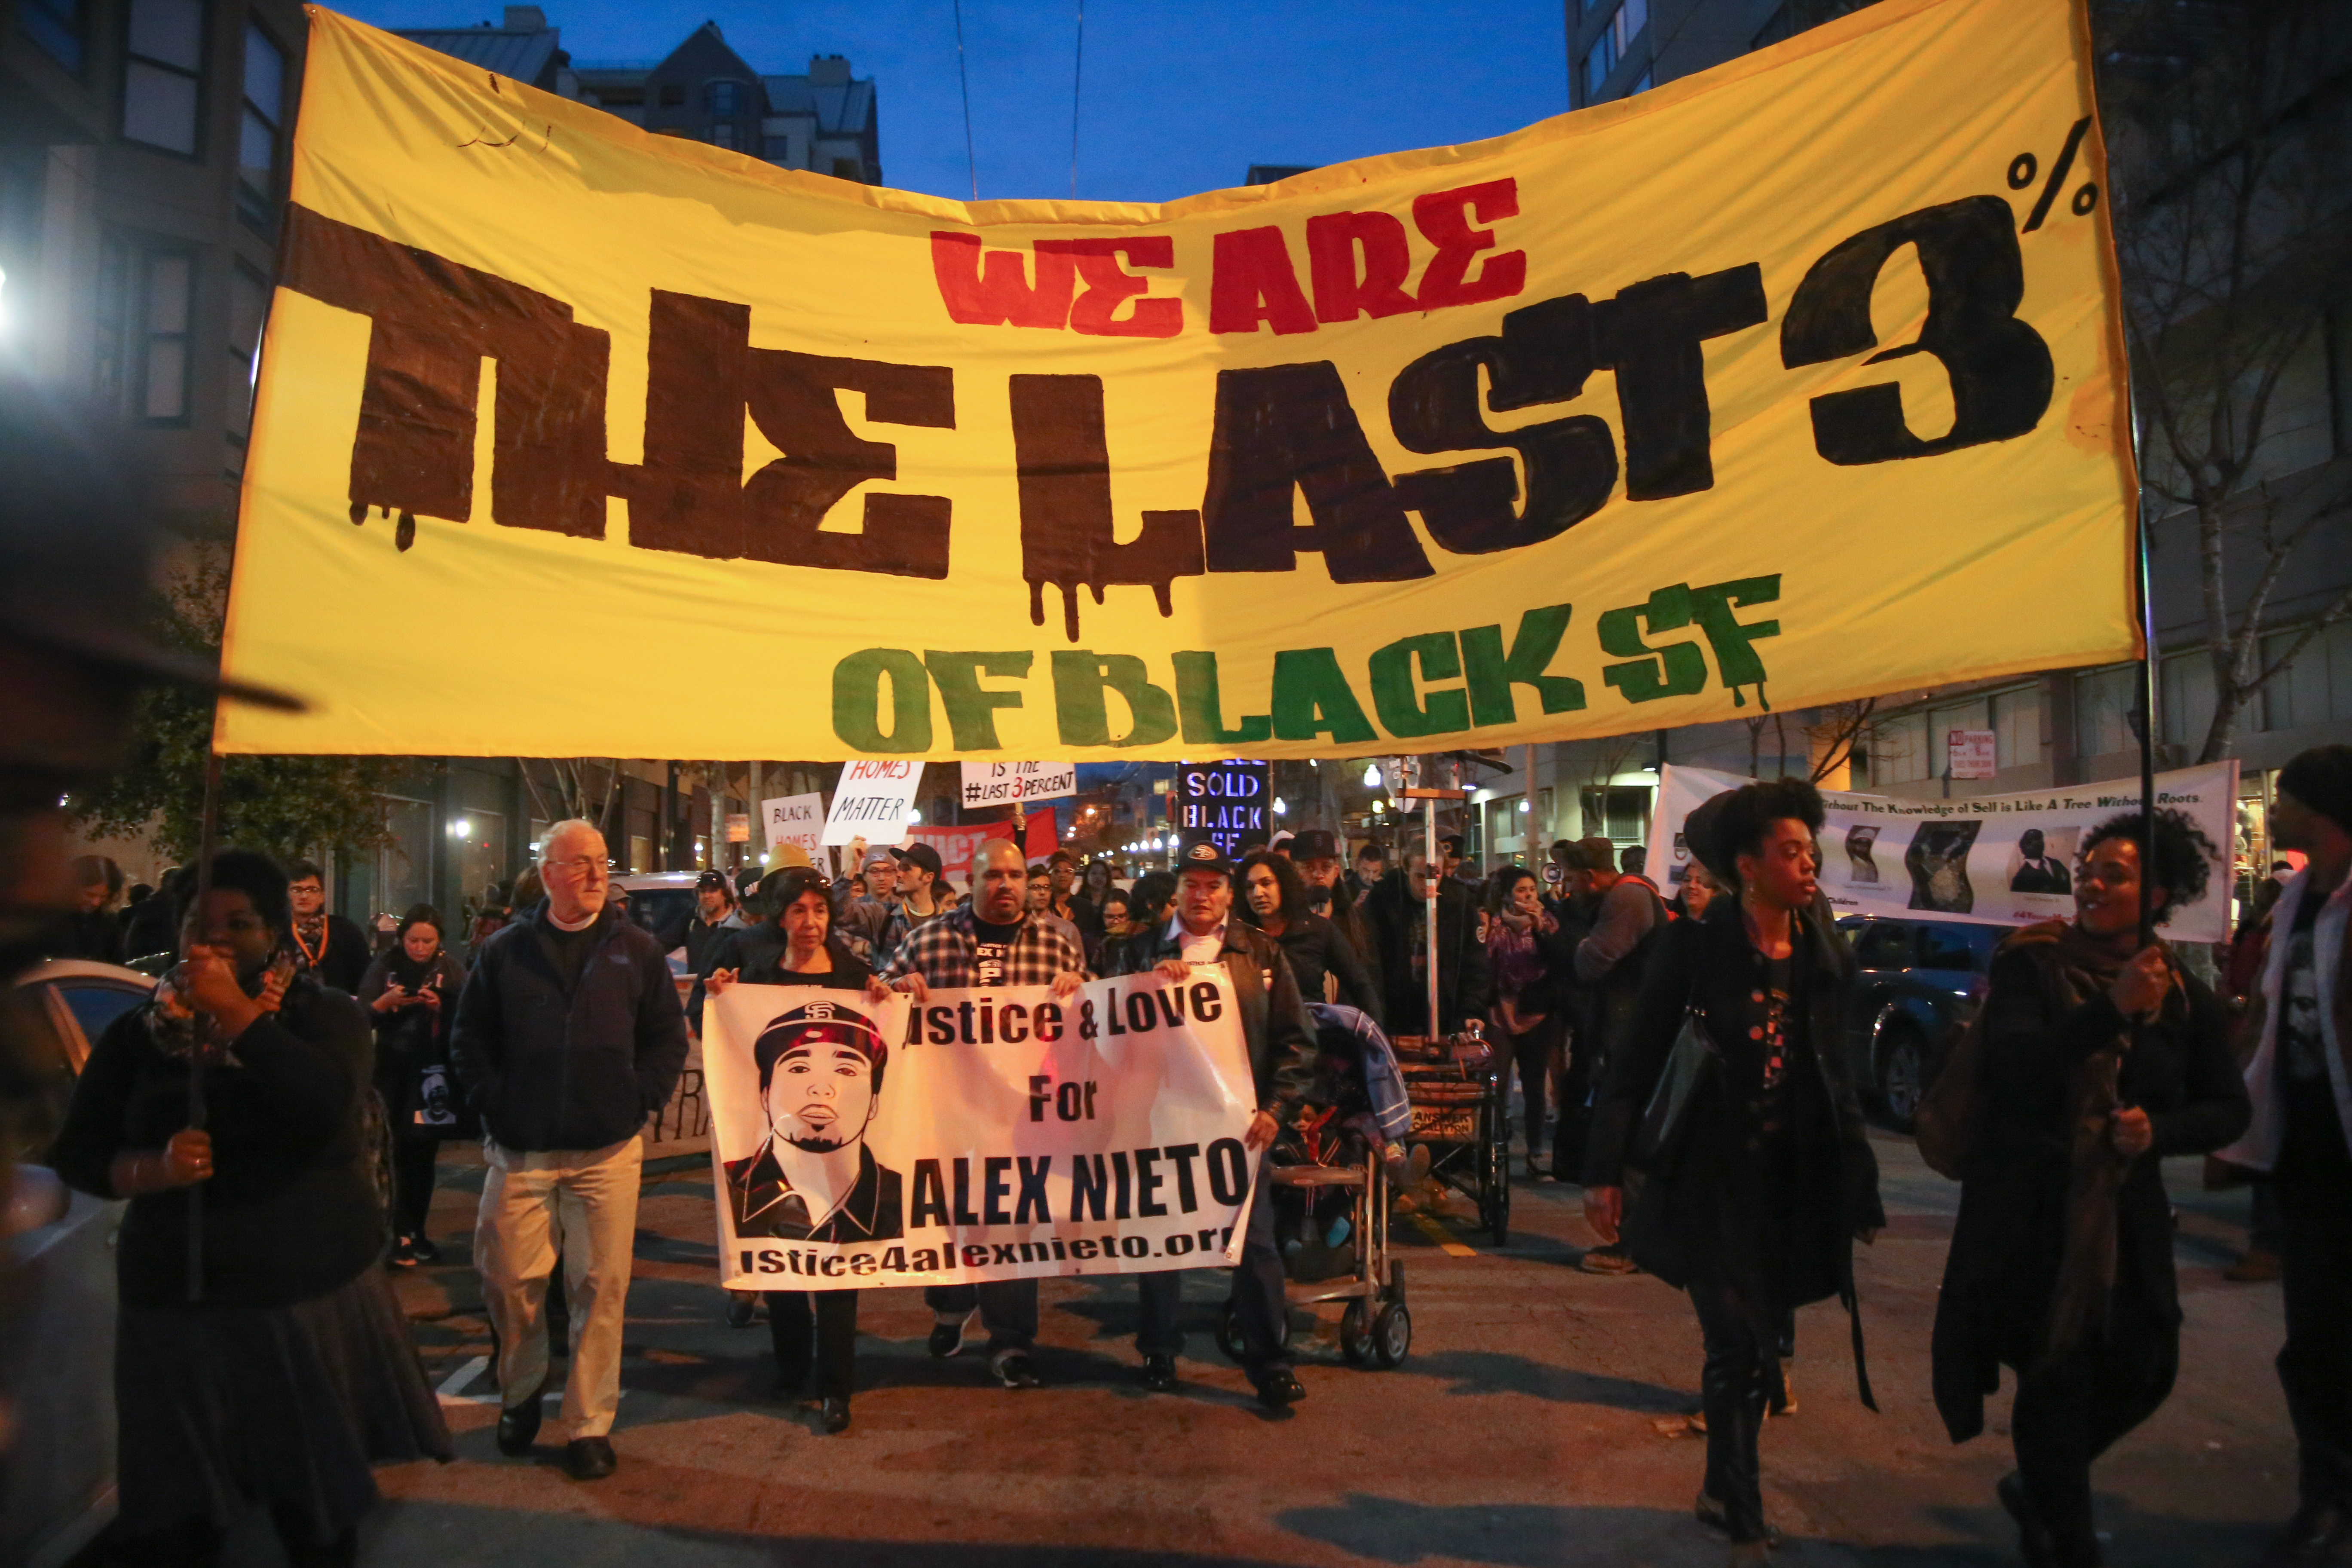 Protestors march down the Fillmore district during a demonstration against displacement of minority communities in San Francisco and to demand justice for the family of Mario Woods and Alex Nieto in San Francisco on January 15, 2016. (Photo by Joel Angel Juarez/ Special to The Guardsman)